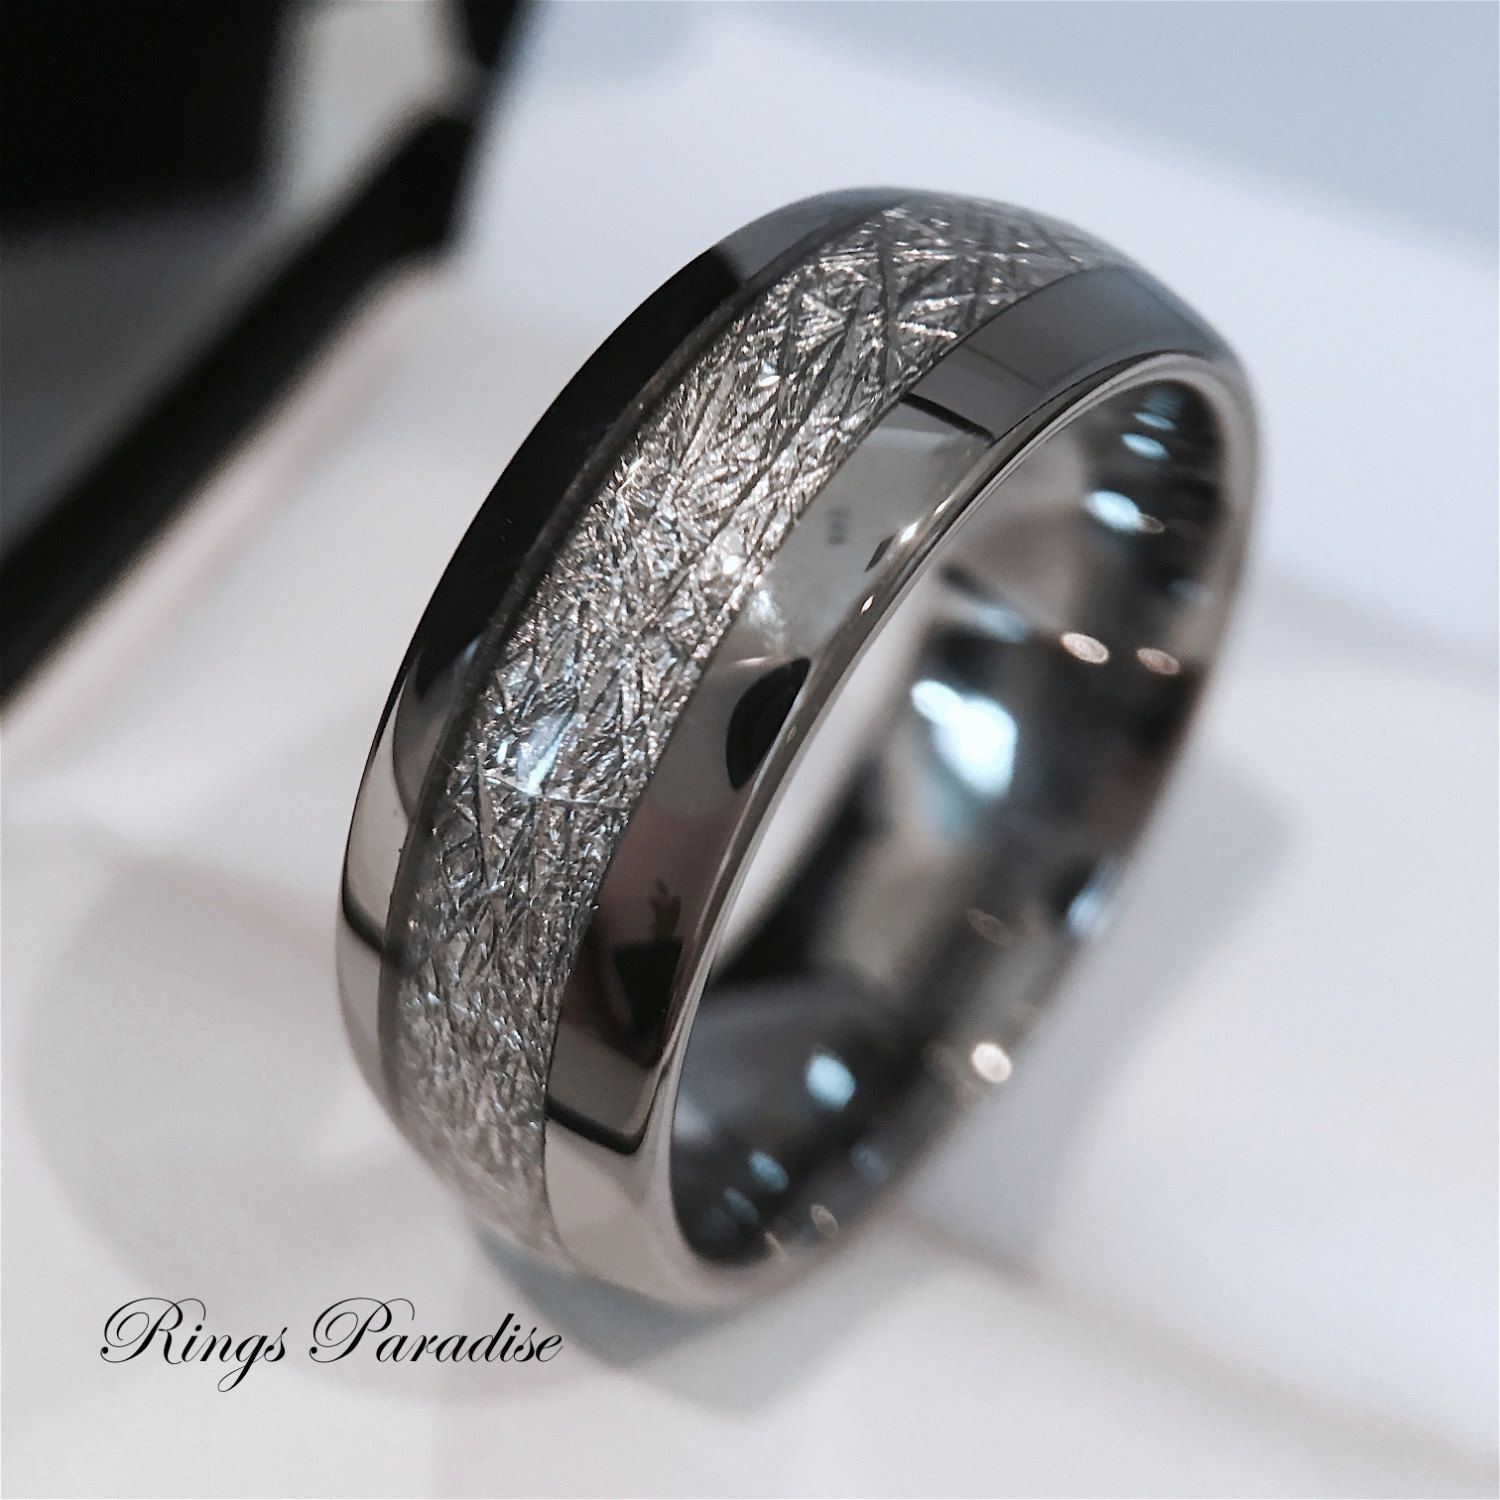 Mens Tungsten Wedding Band  Meteorite Inlay Ring  His Engagement Ring Tungsten Wedding Band  His and Her Promise Ring  Imitated  . Inlay Wedding Bands. Home Design Ideas